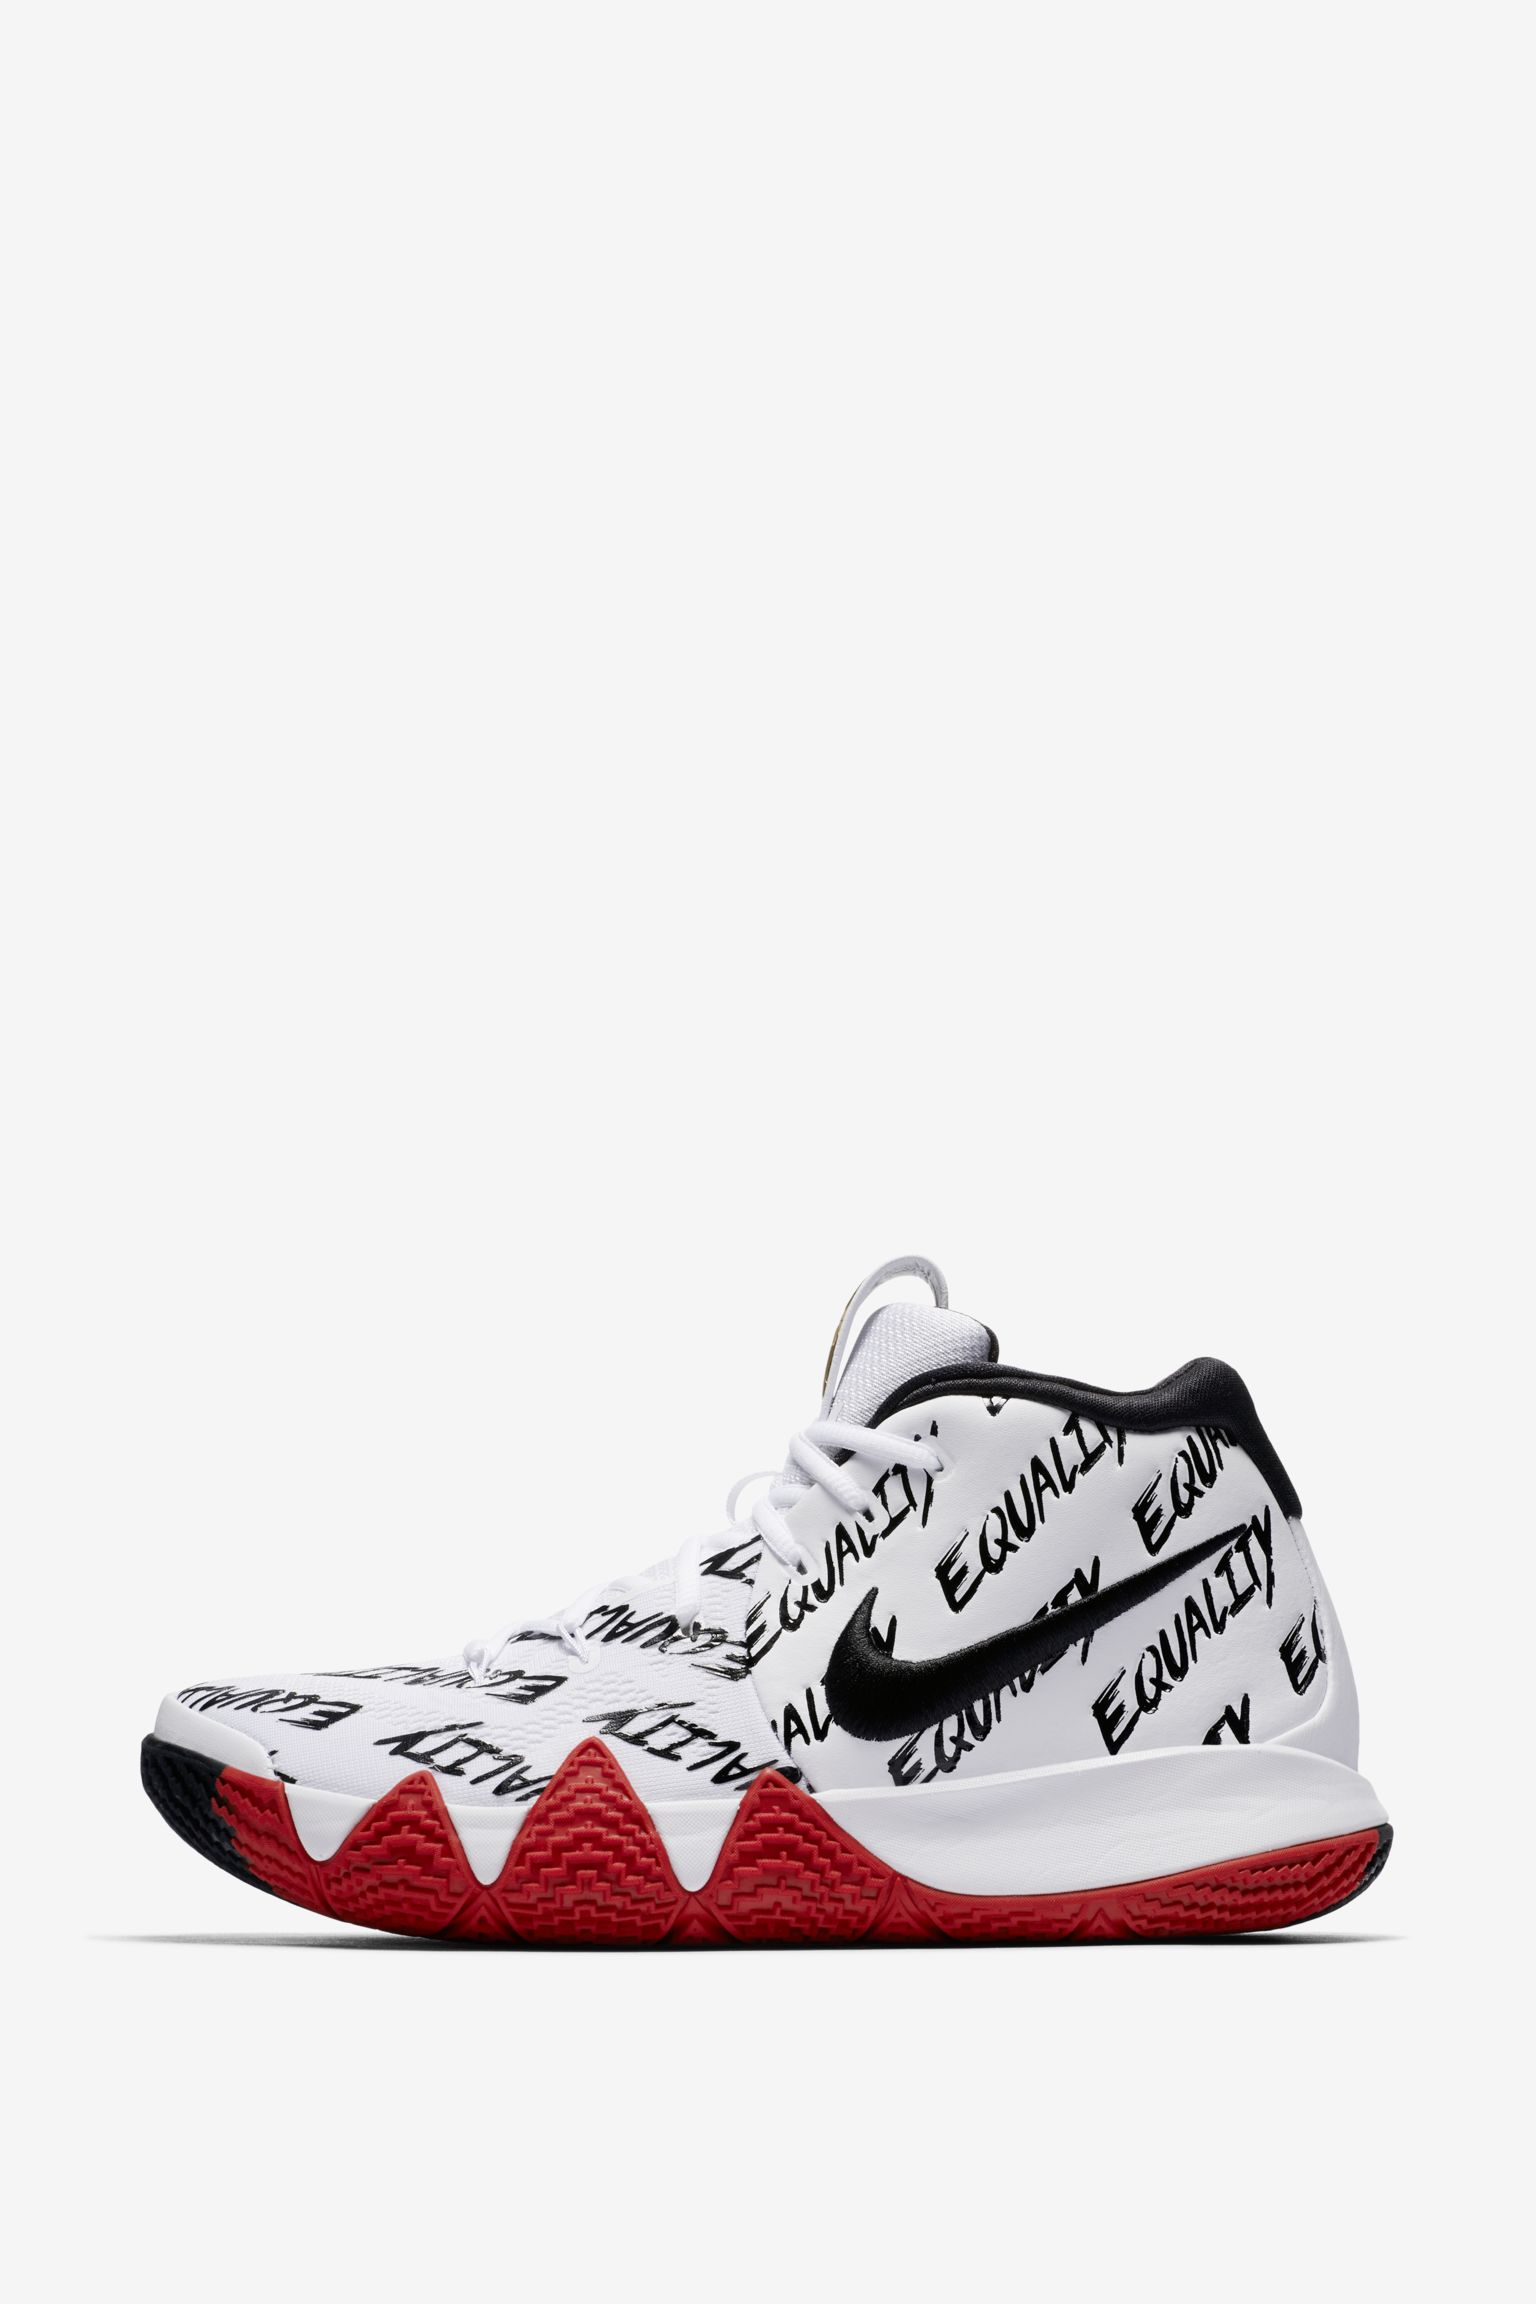 separation shoes f1ff1 dd1b9 coupon for nike kyrie 4 original fake weiß 5a428 904a0